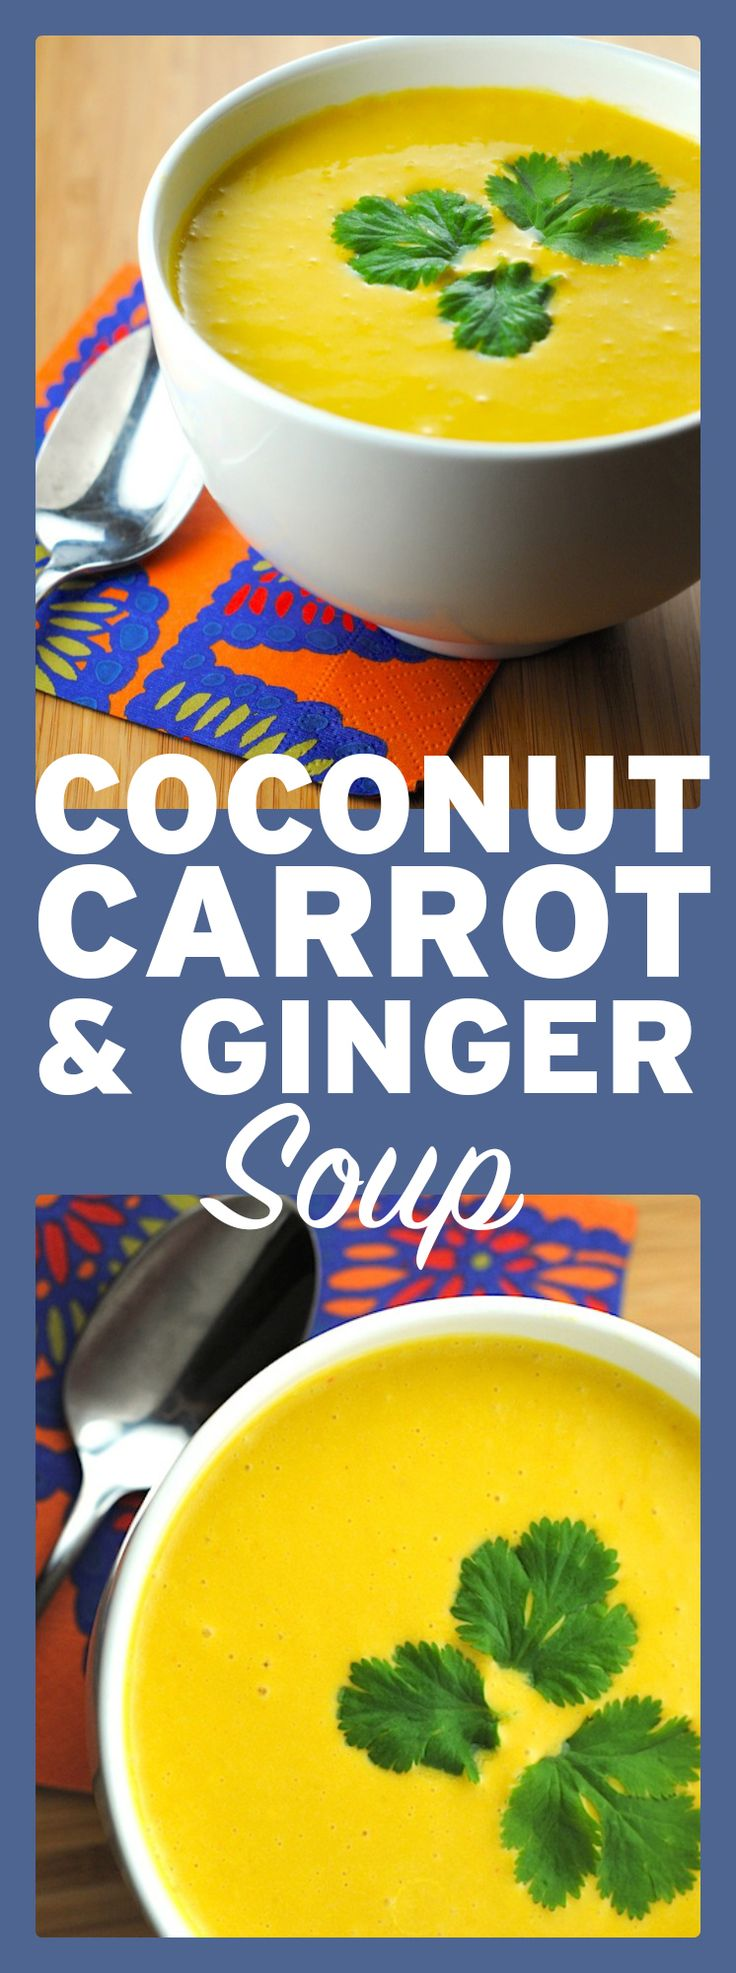 Easy coconut, carrot and ginger soup! This healthy soup is easy to make vegan (skip the fish sauce and use soy sauce). Full of flavour!  http://theblenderist.com/carrot-soup-ginger-coconut-milk/